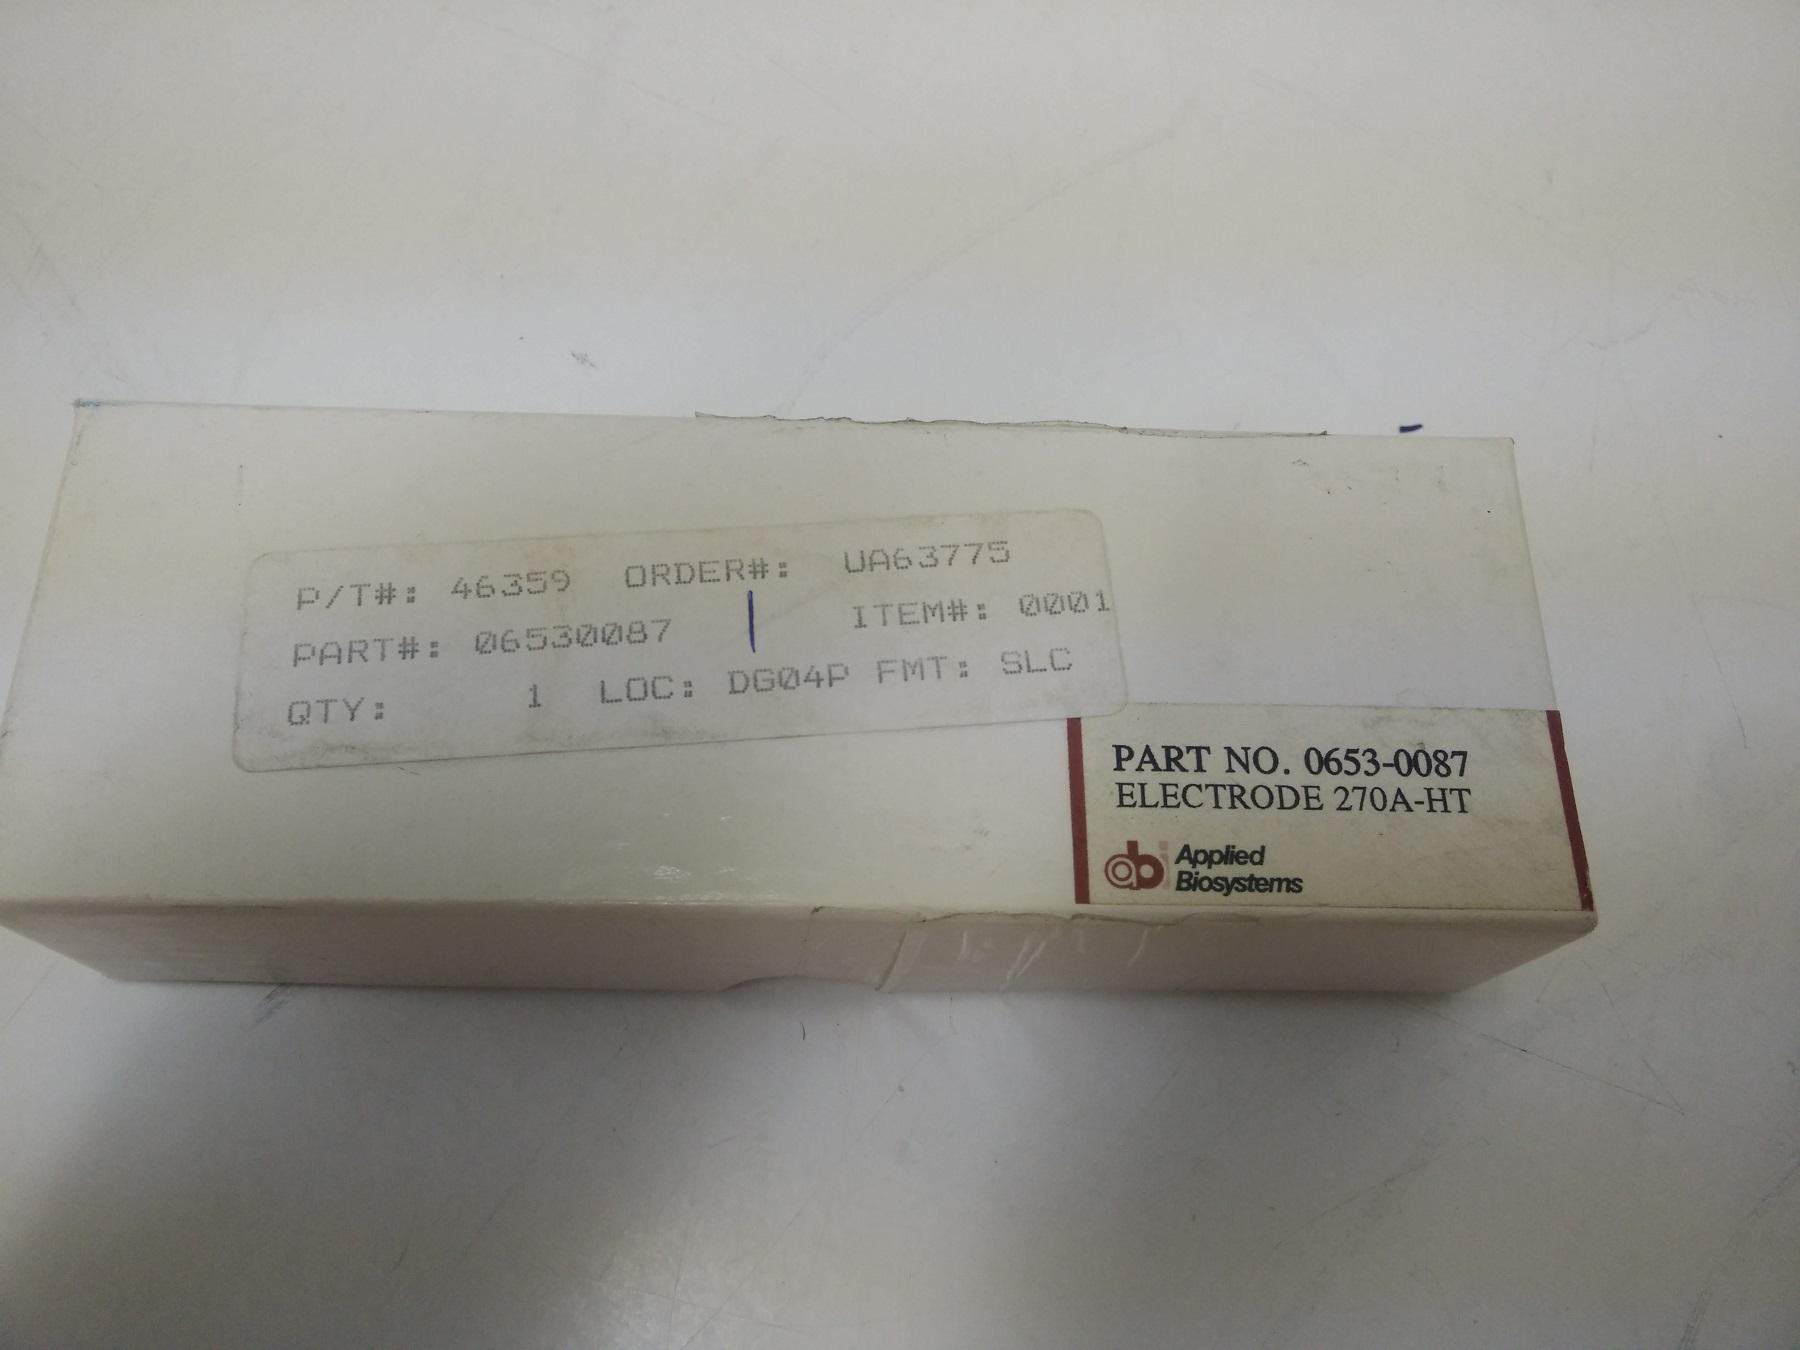 NEW Applied Biosystems Electrode 270A-HT Capillary Electrophoresis 0653-0087